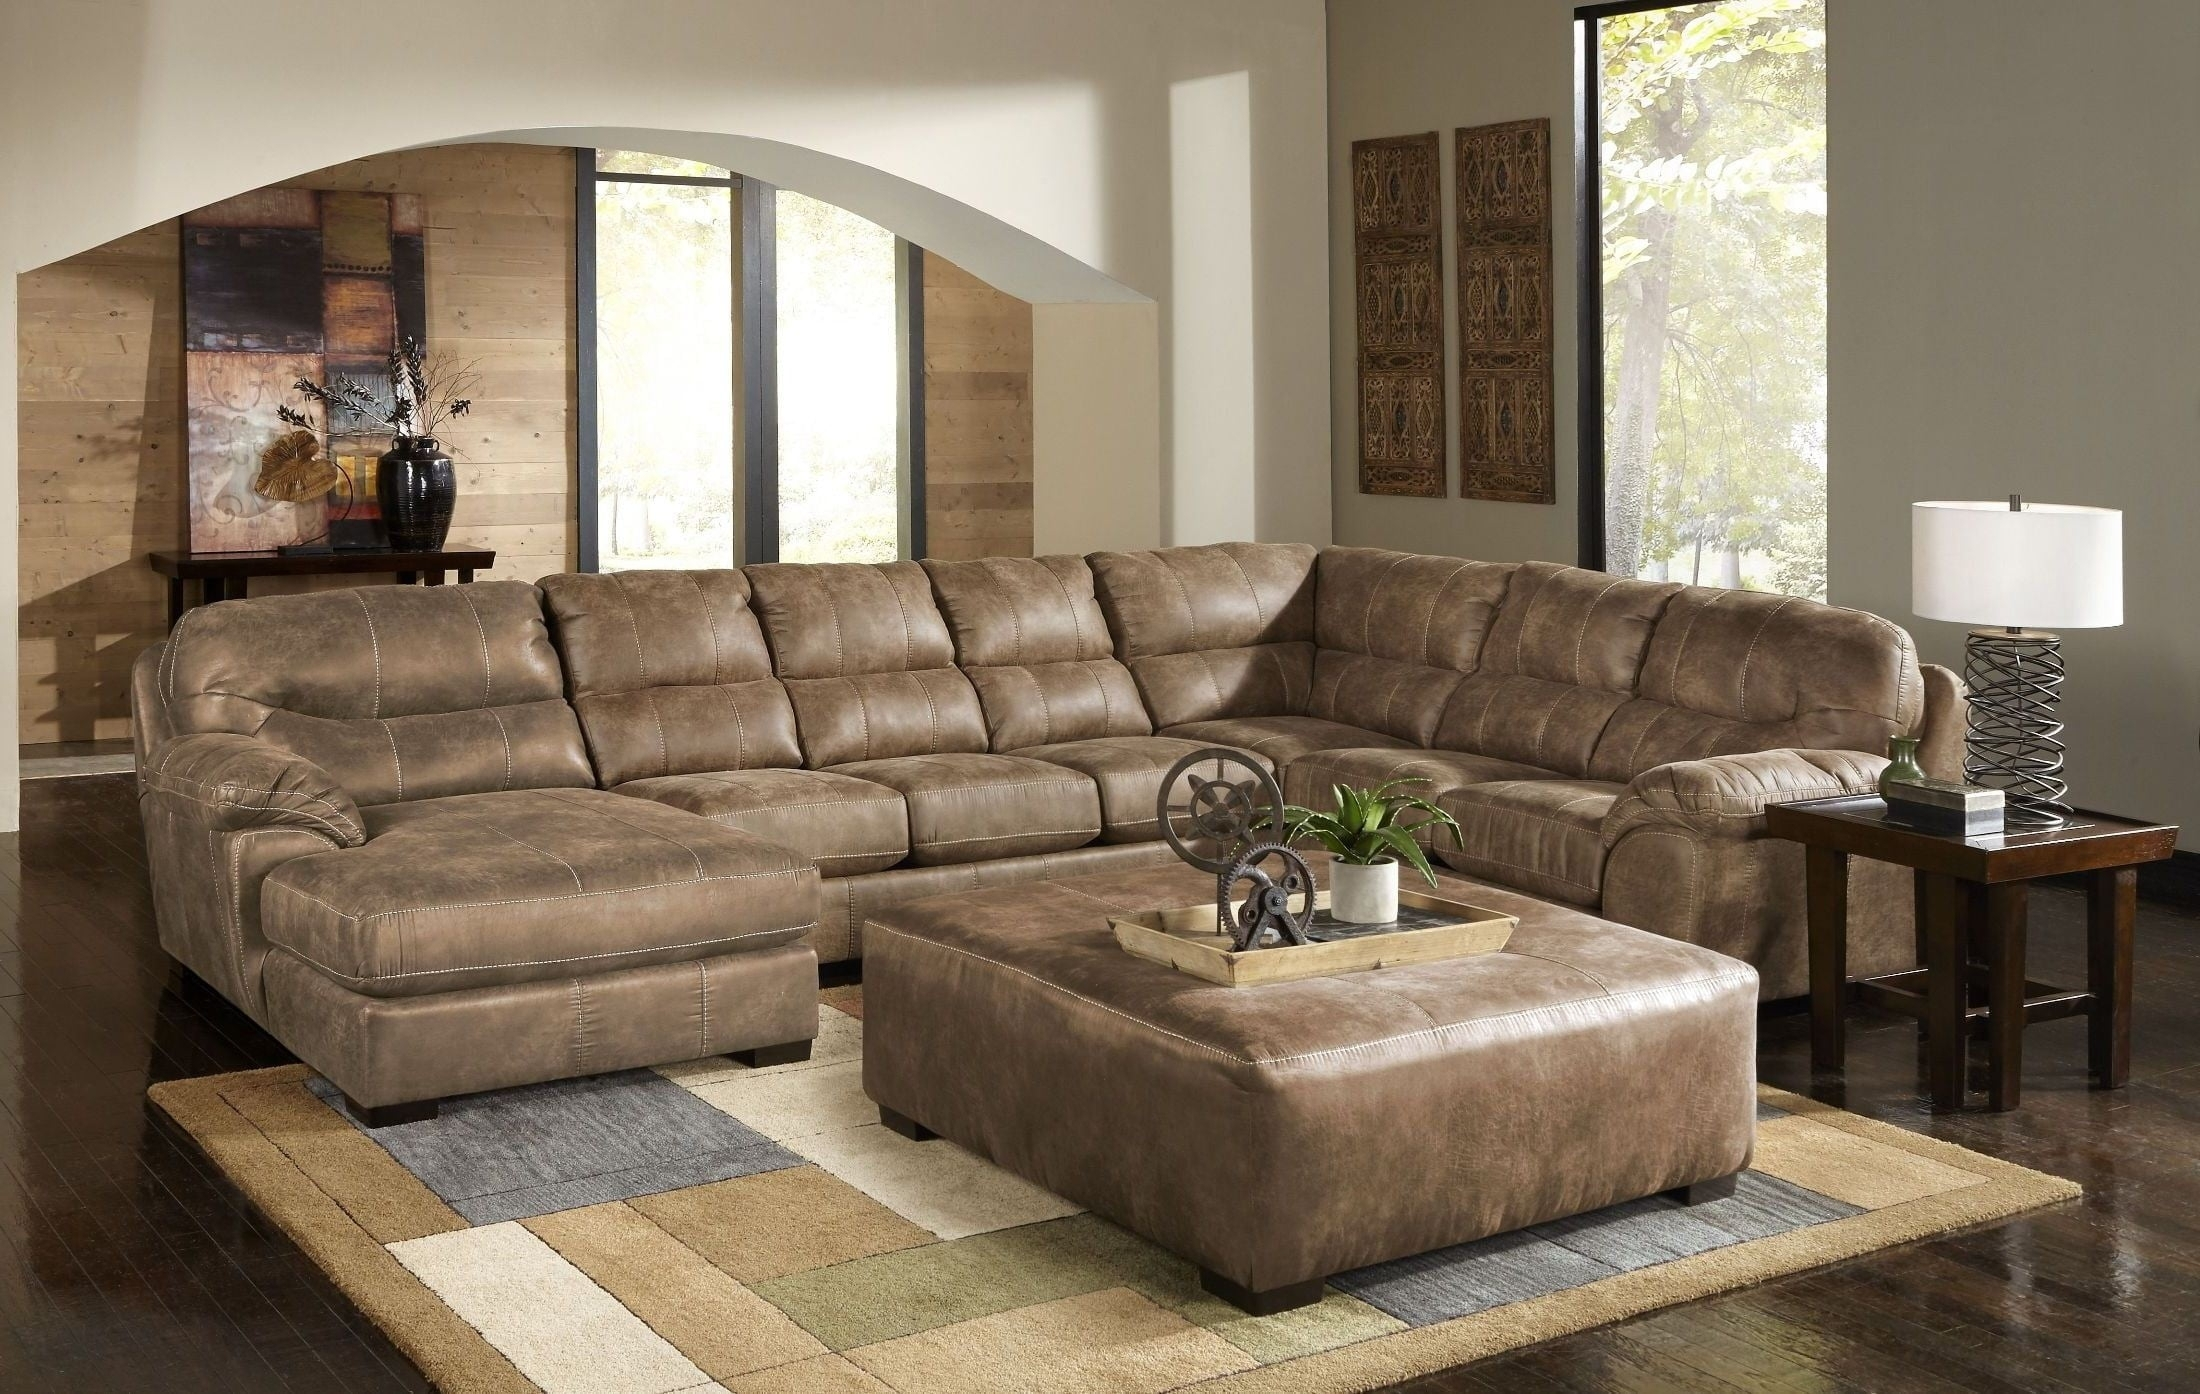 Grant Silt Laf Chaise Sectional, 4453-75-122749302749, Jackson inside Avery 2 Piece Sectionals With Laf Armless Chaise (Image 12 of 30)